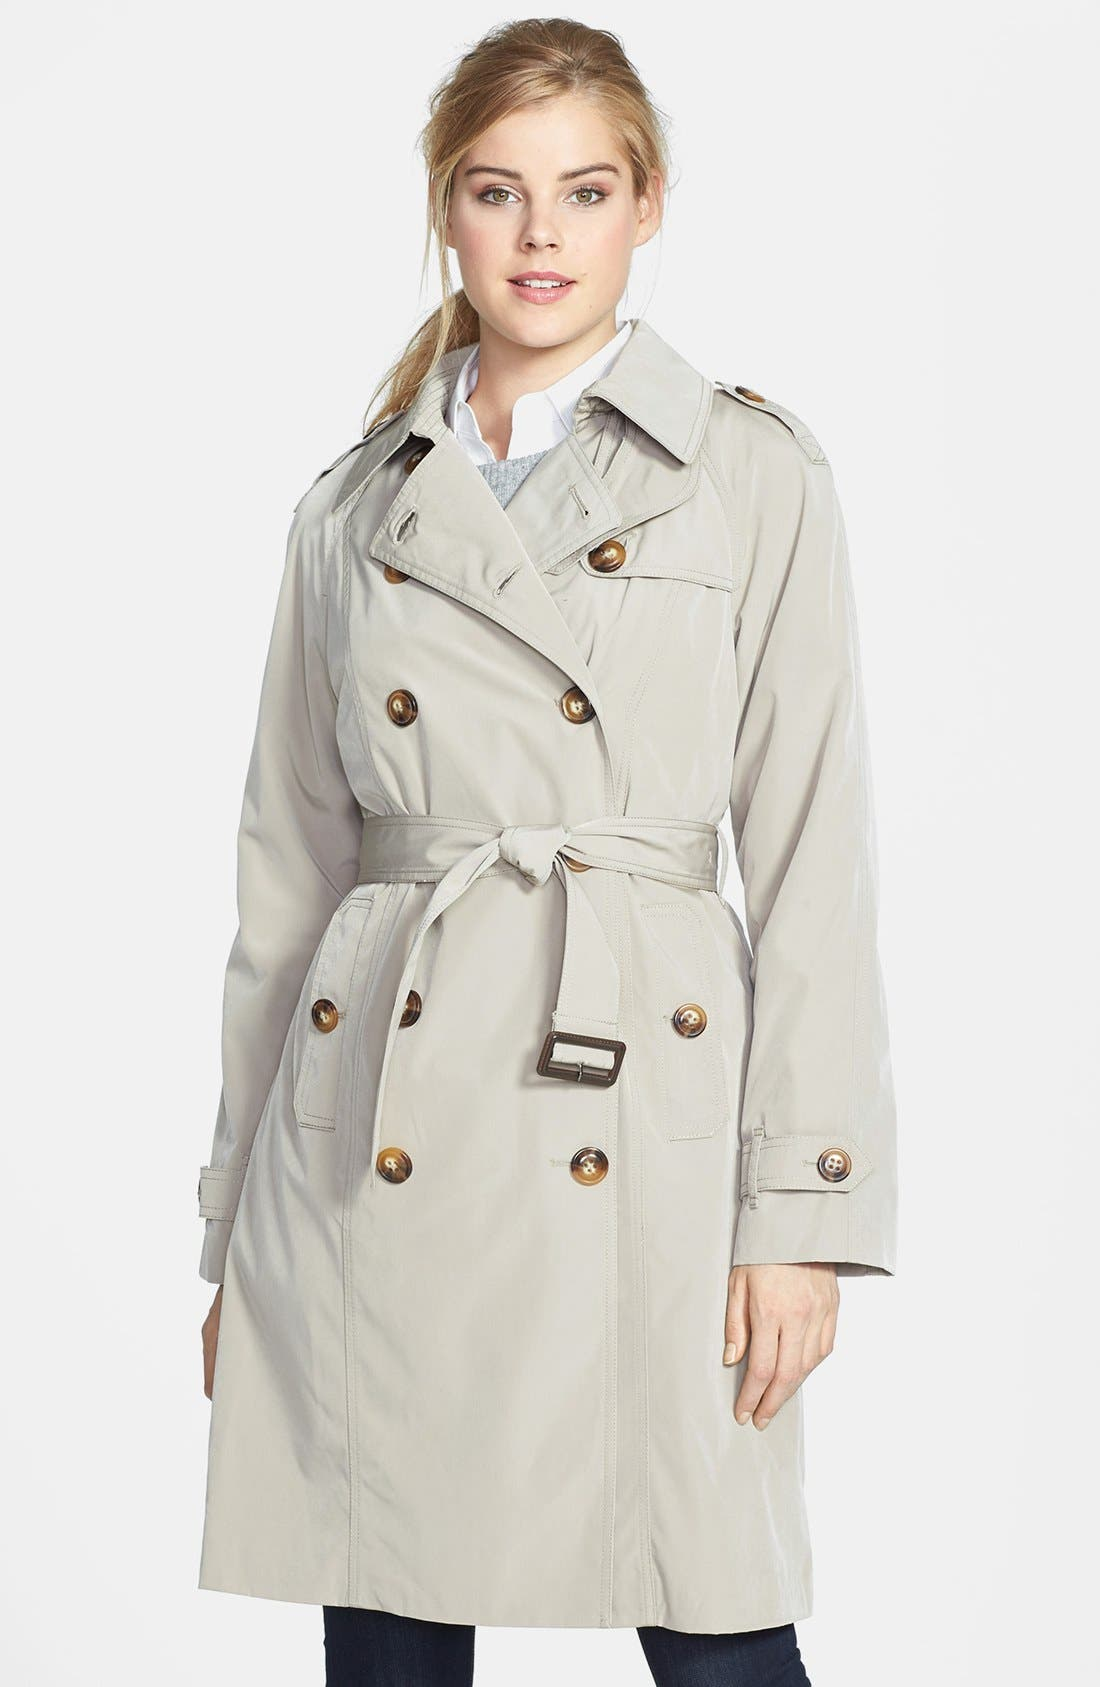 Main Image - London Fog Double Breasted Trench Coat with Detachable Liner